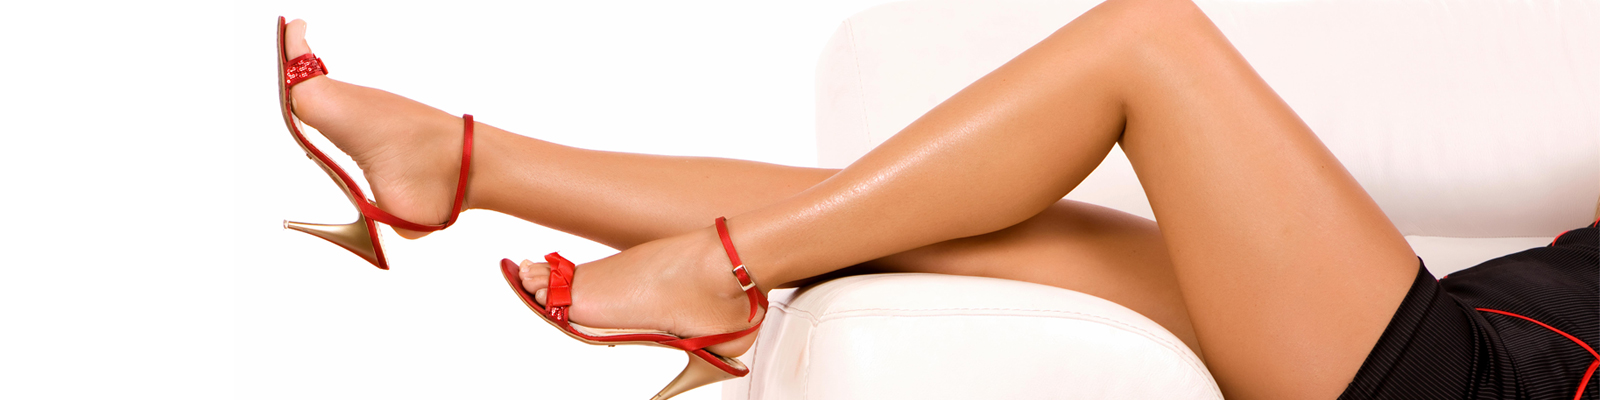 Attractive women legs